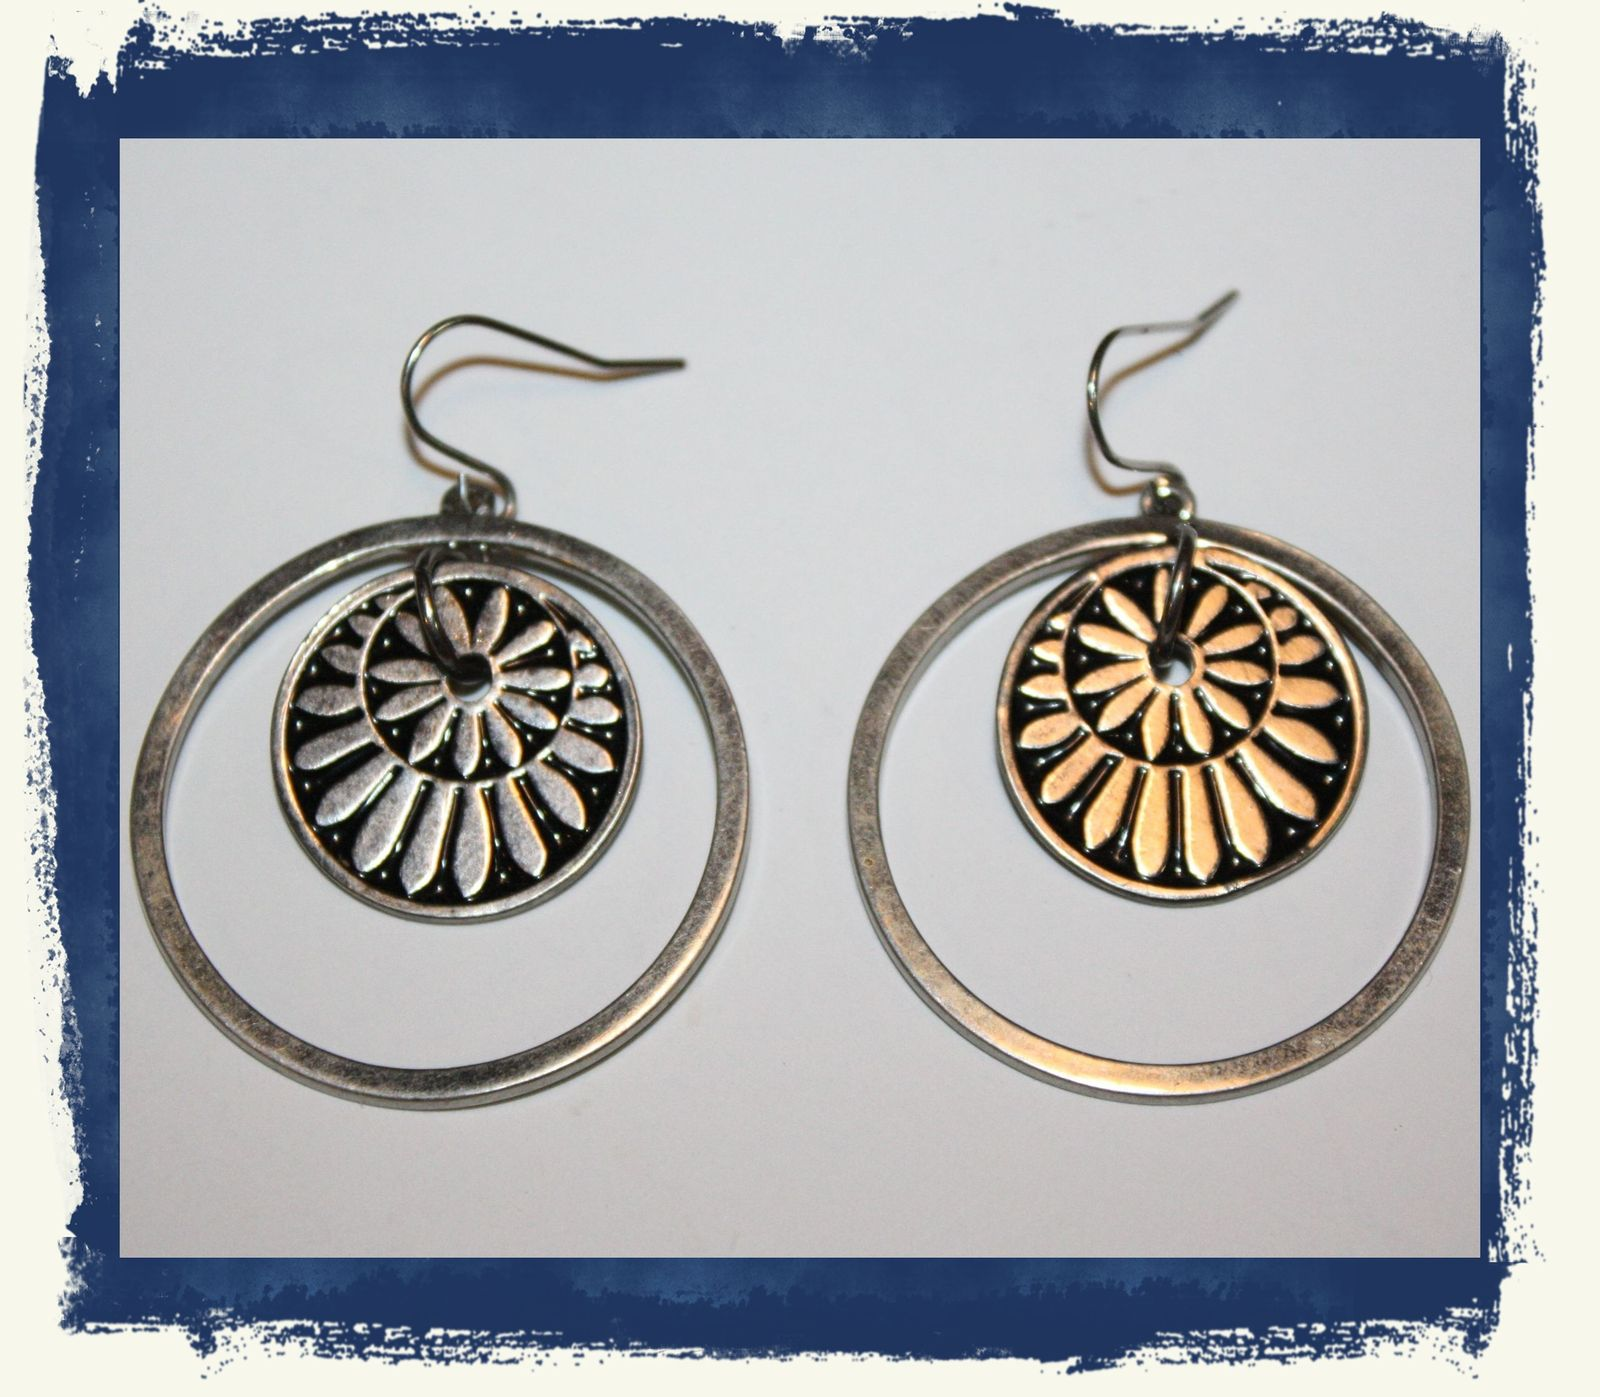 VTG 80s Silver Tone Concentric Circles Dangle/Drop Loop Pierced Earrings